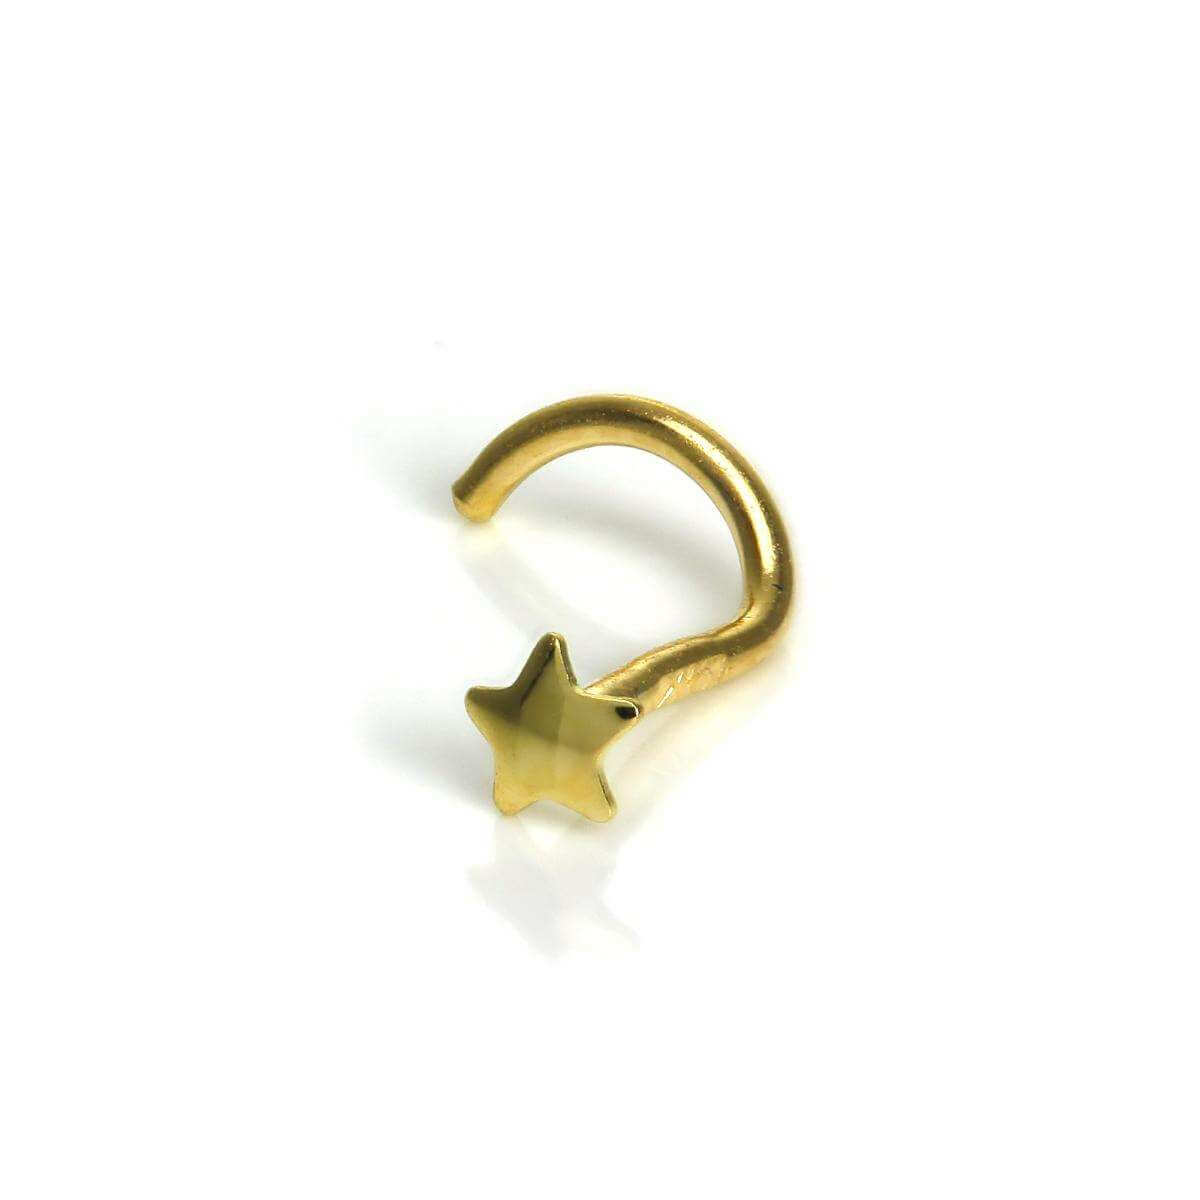 9ct Gold Star Nose Screw Piercing